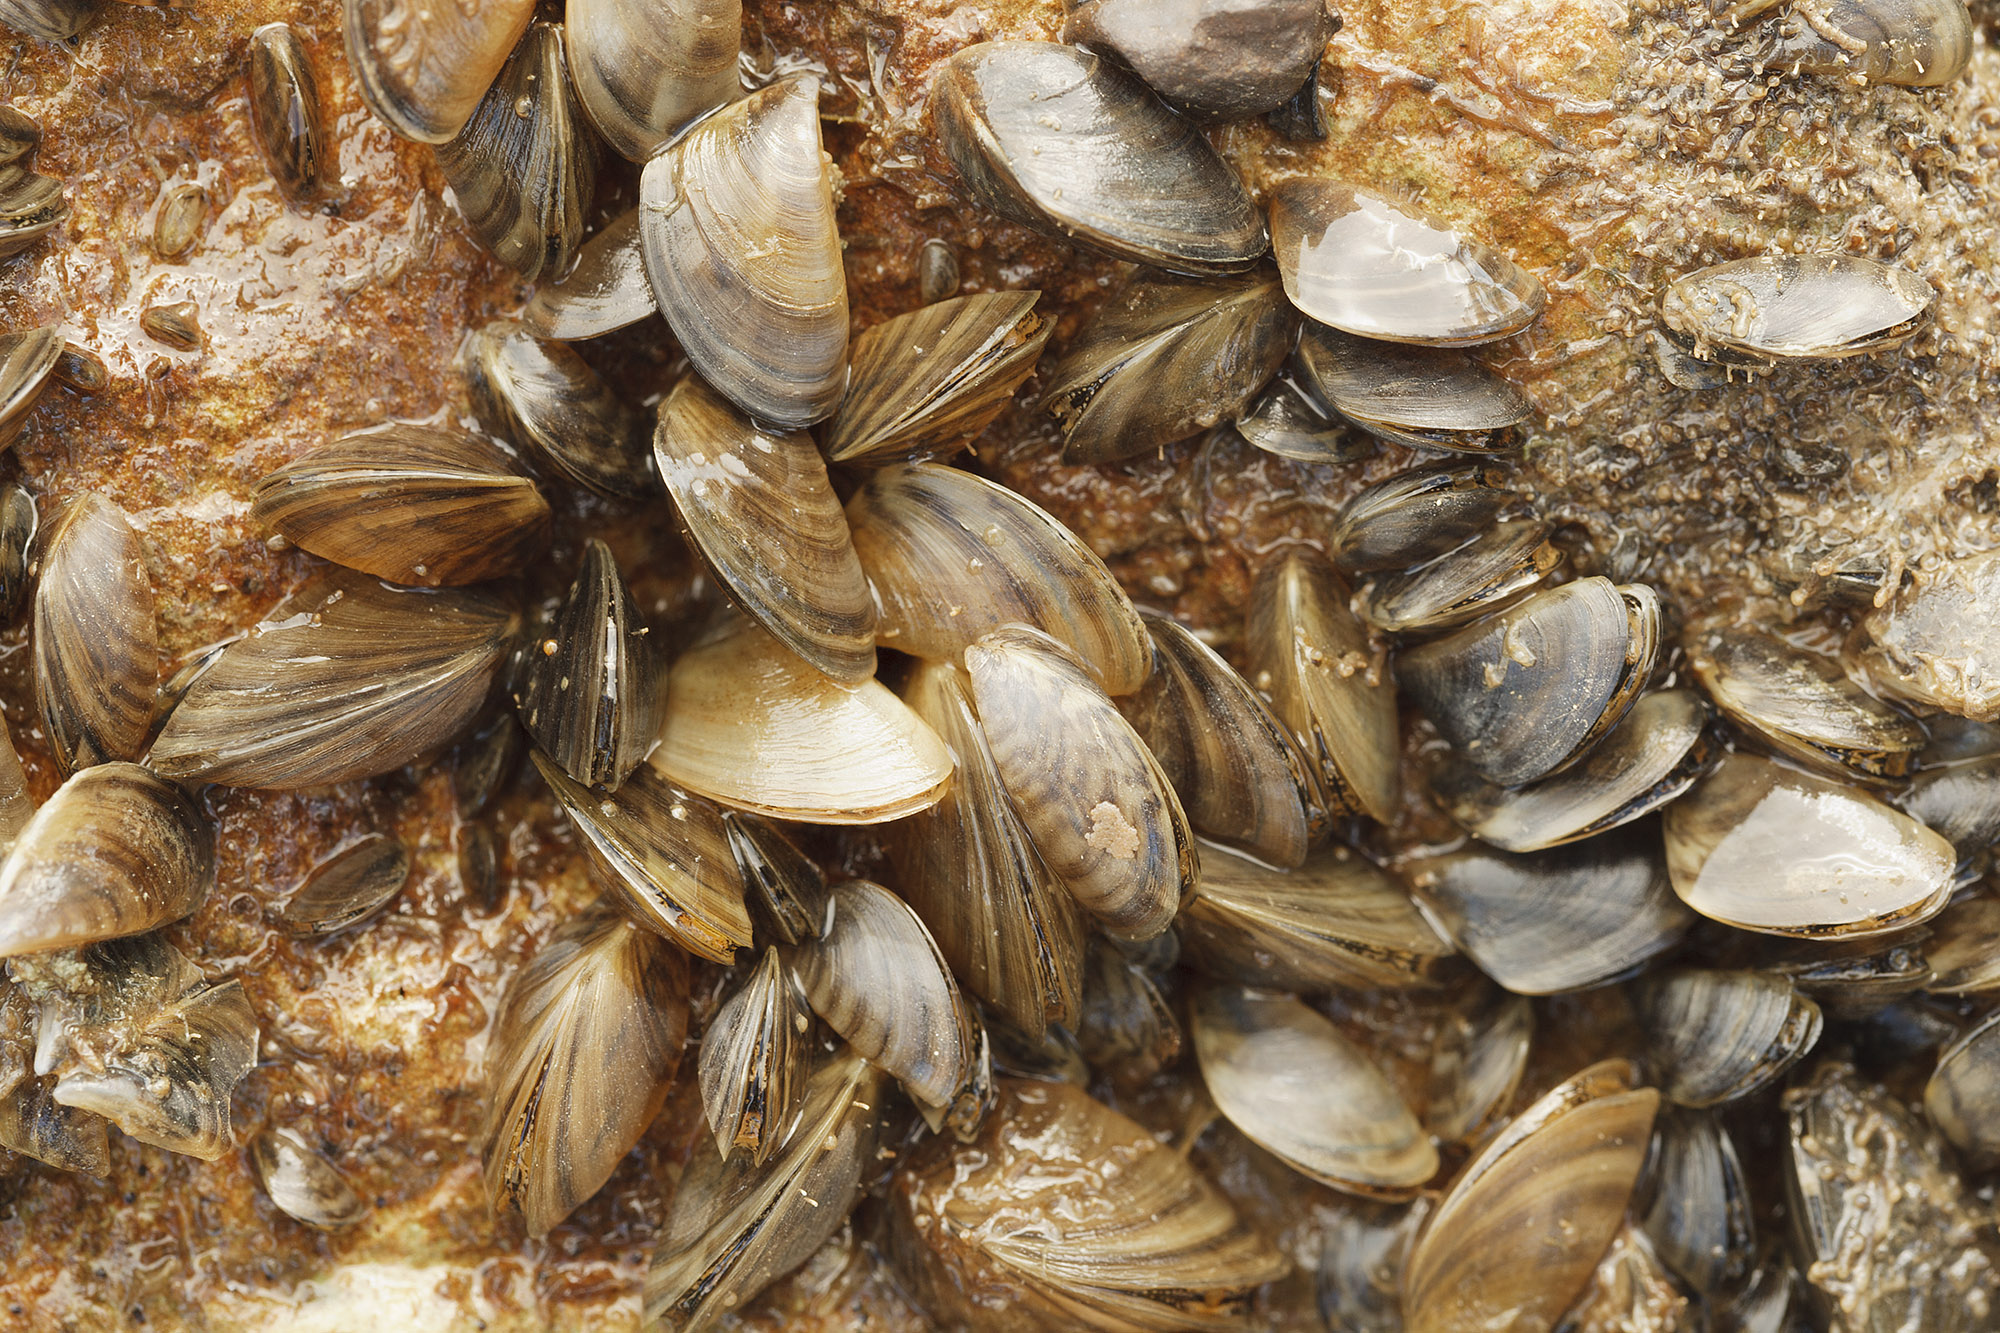 Zebra mussels spotted in Lady Bird Lake; Lake Austin now 'infested'